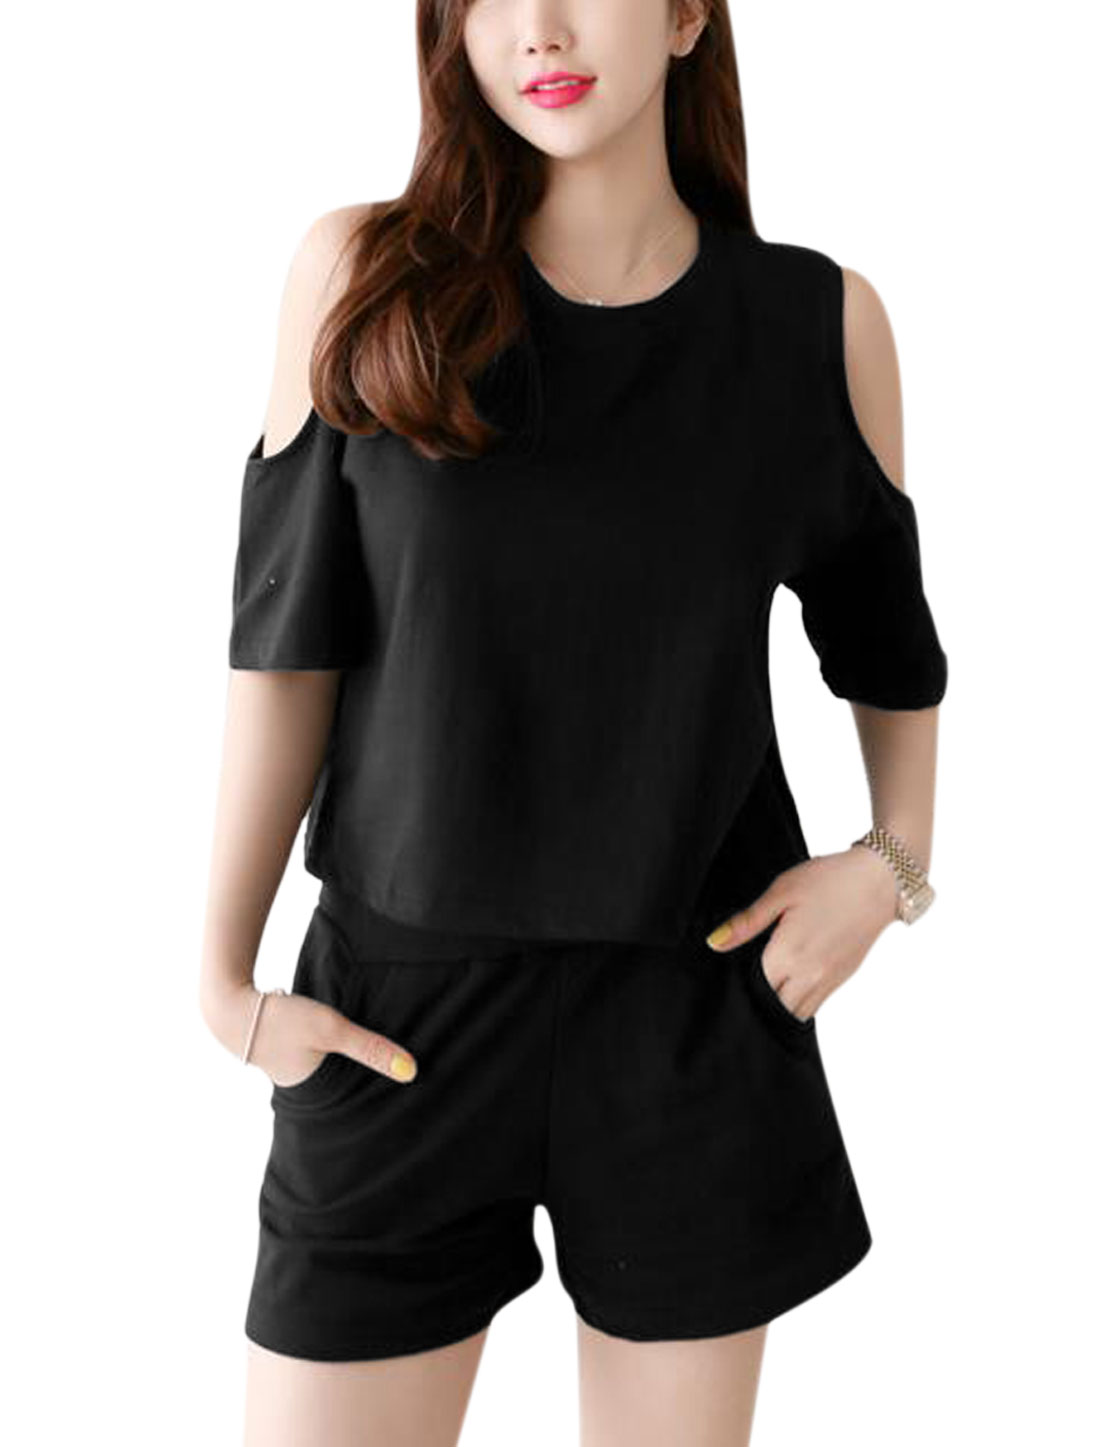 Woman Round Neck Cut Out Shoulder Top w Drawstring Waist Short Set Black XS